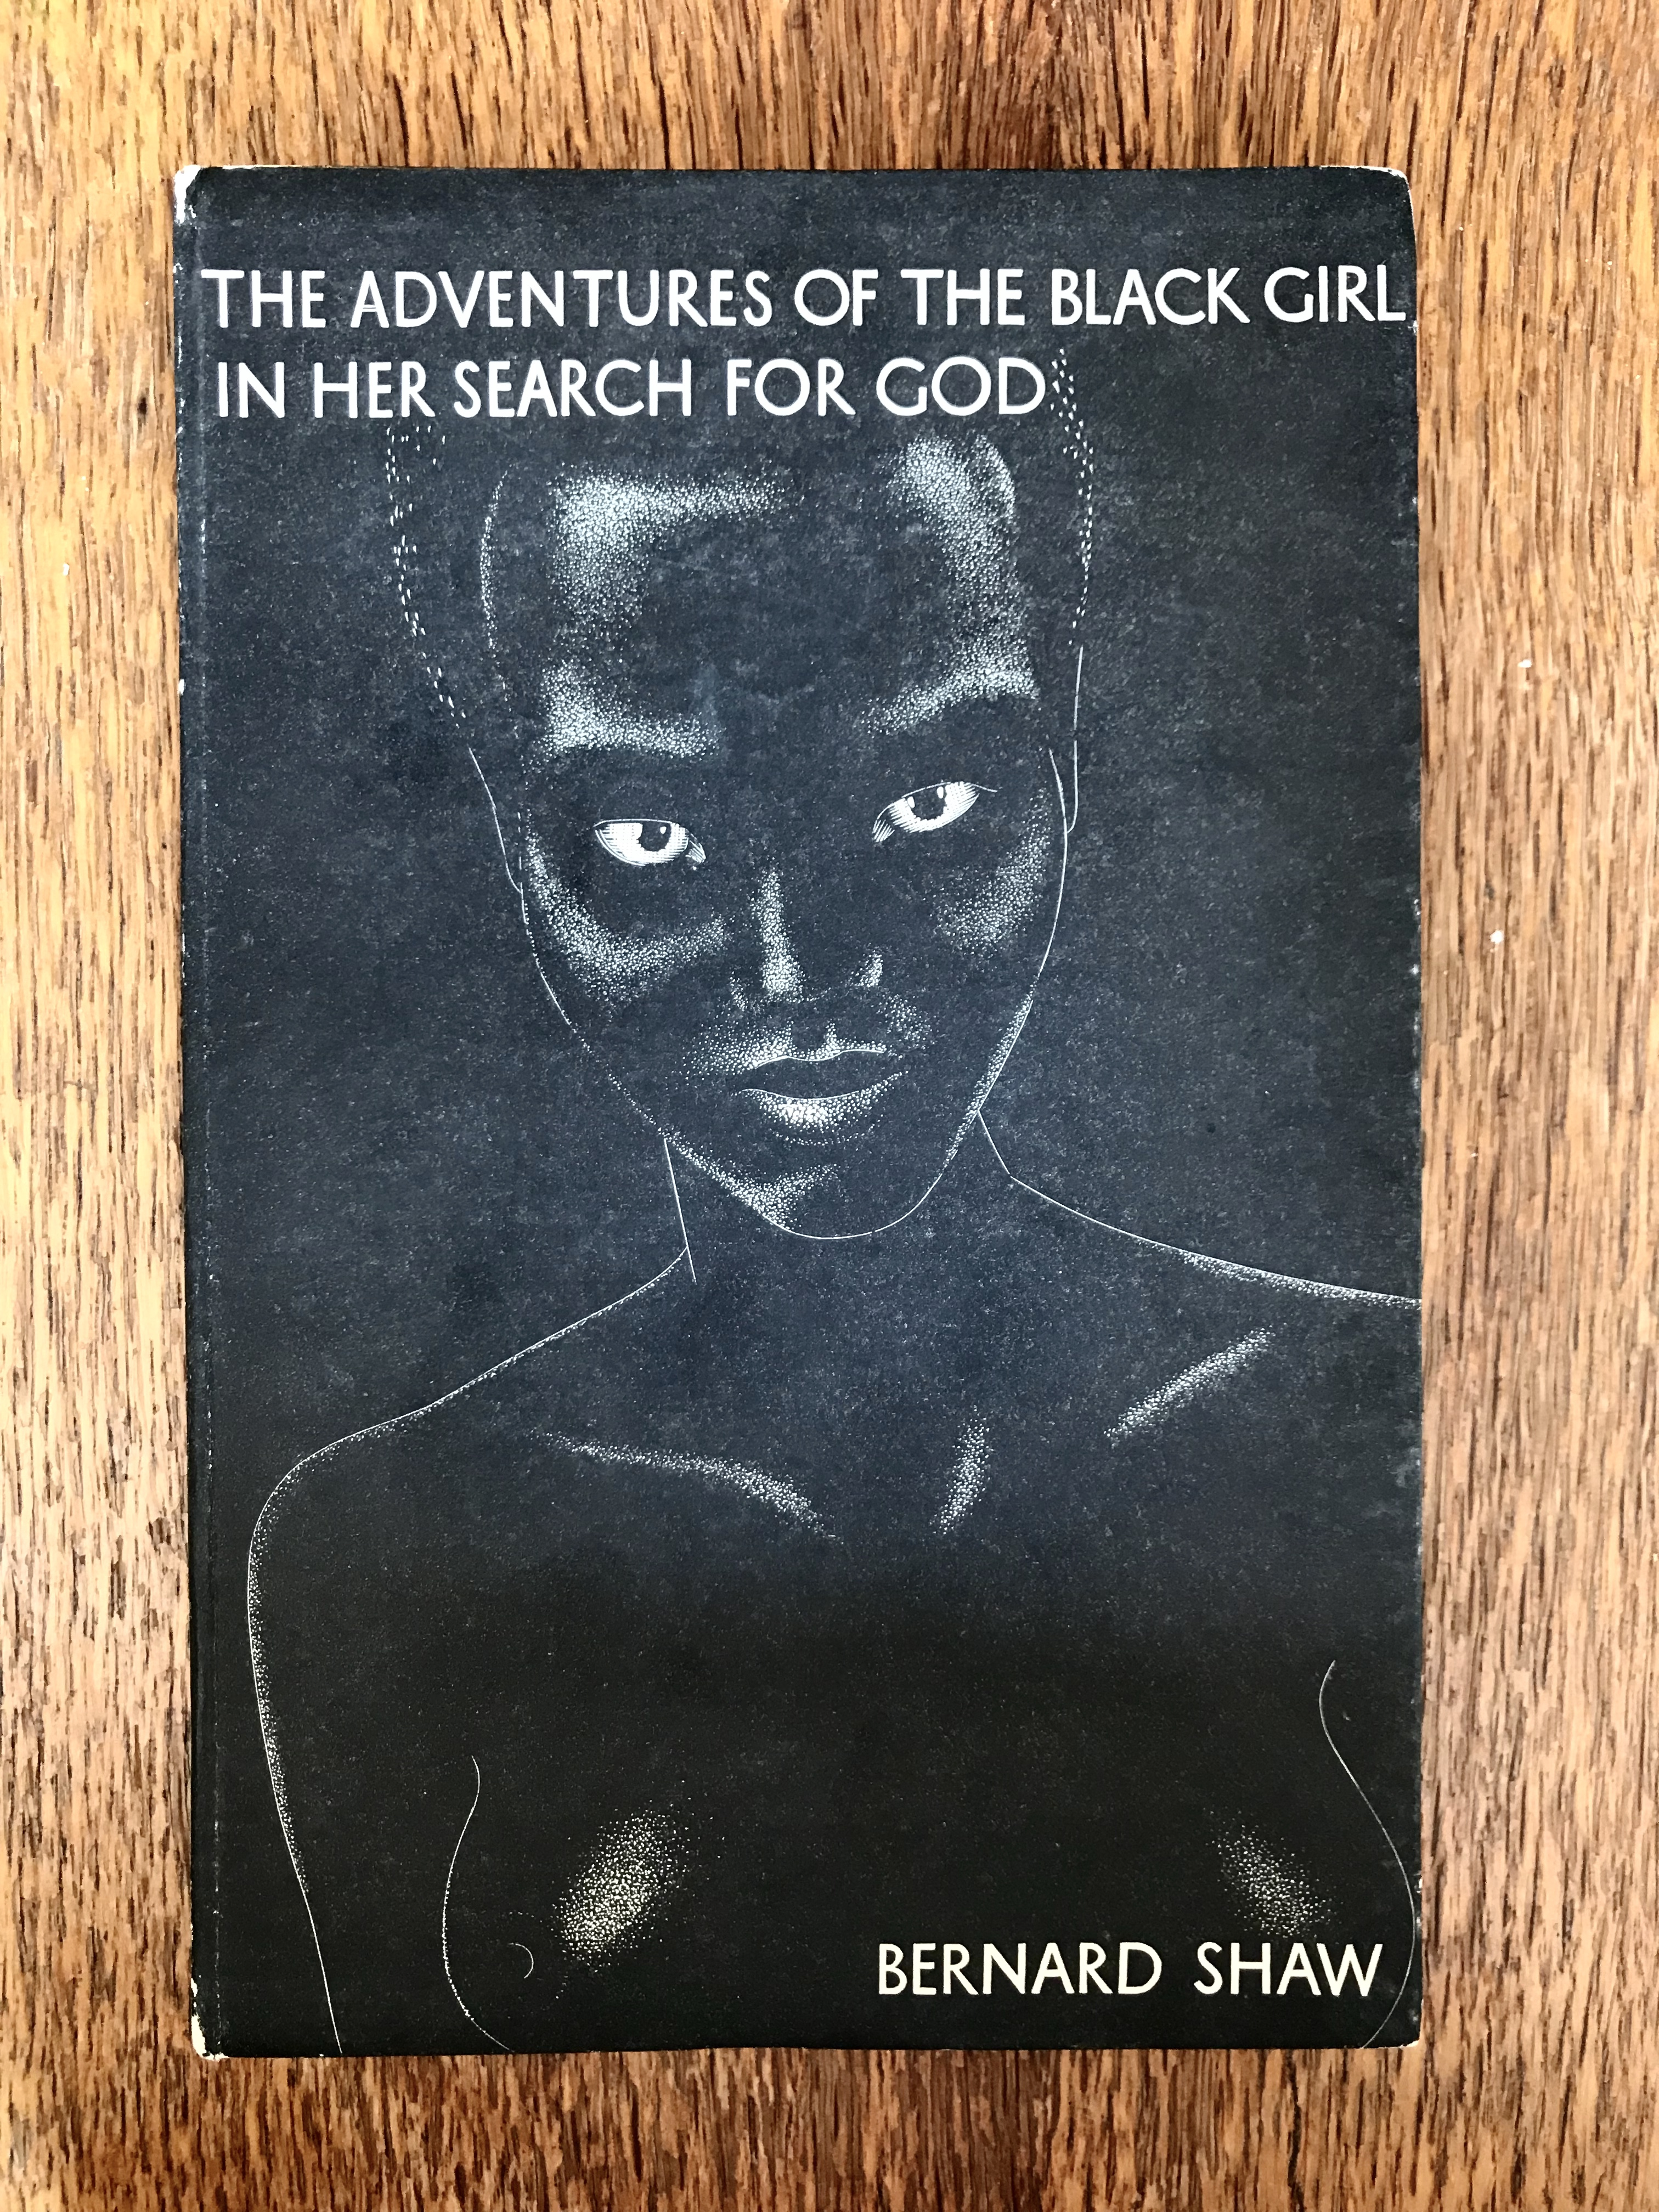 The Adventures od the Black Girl in her Search for God